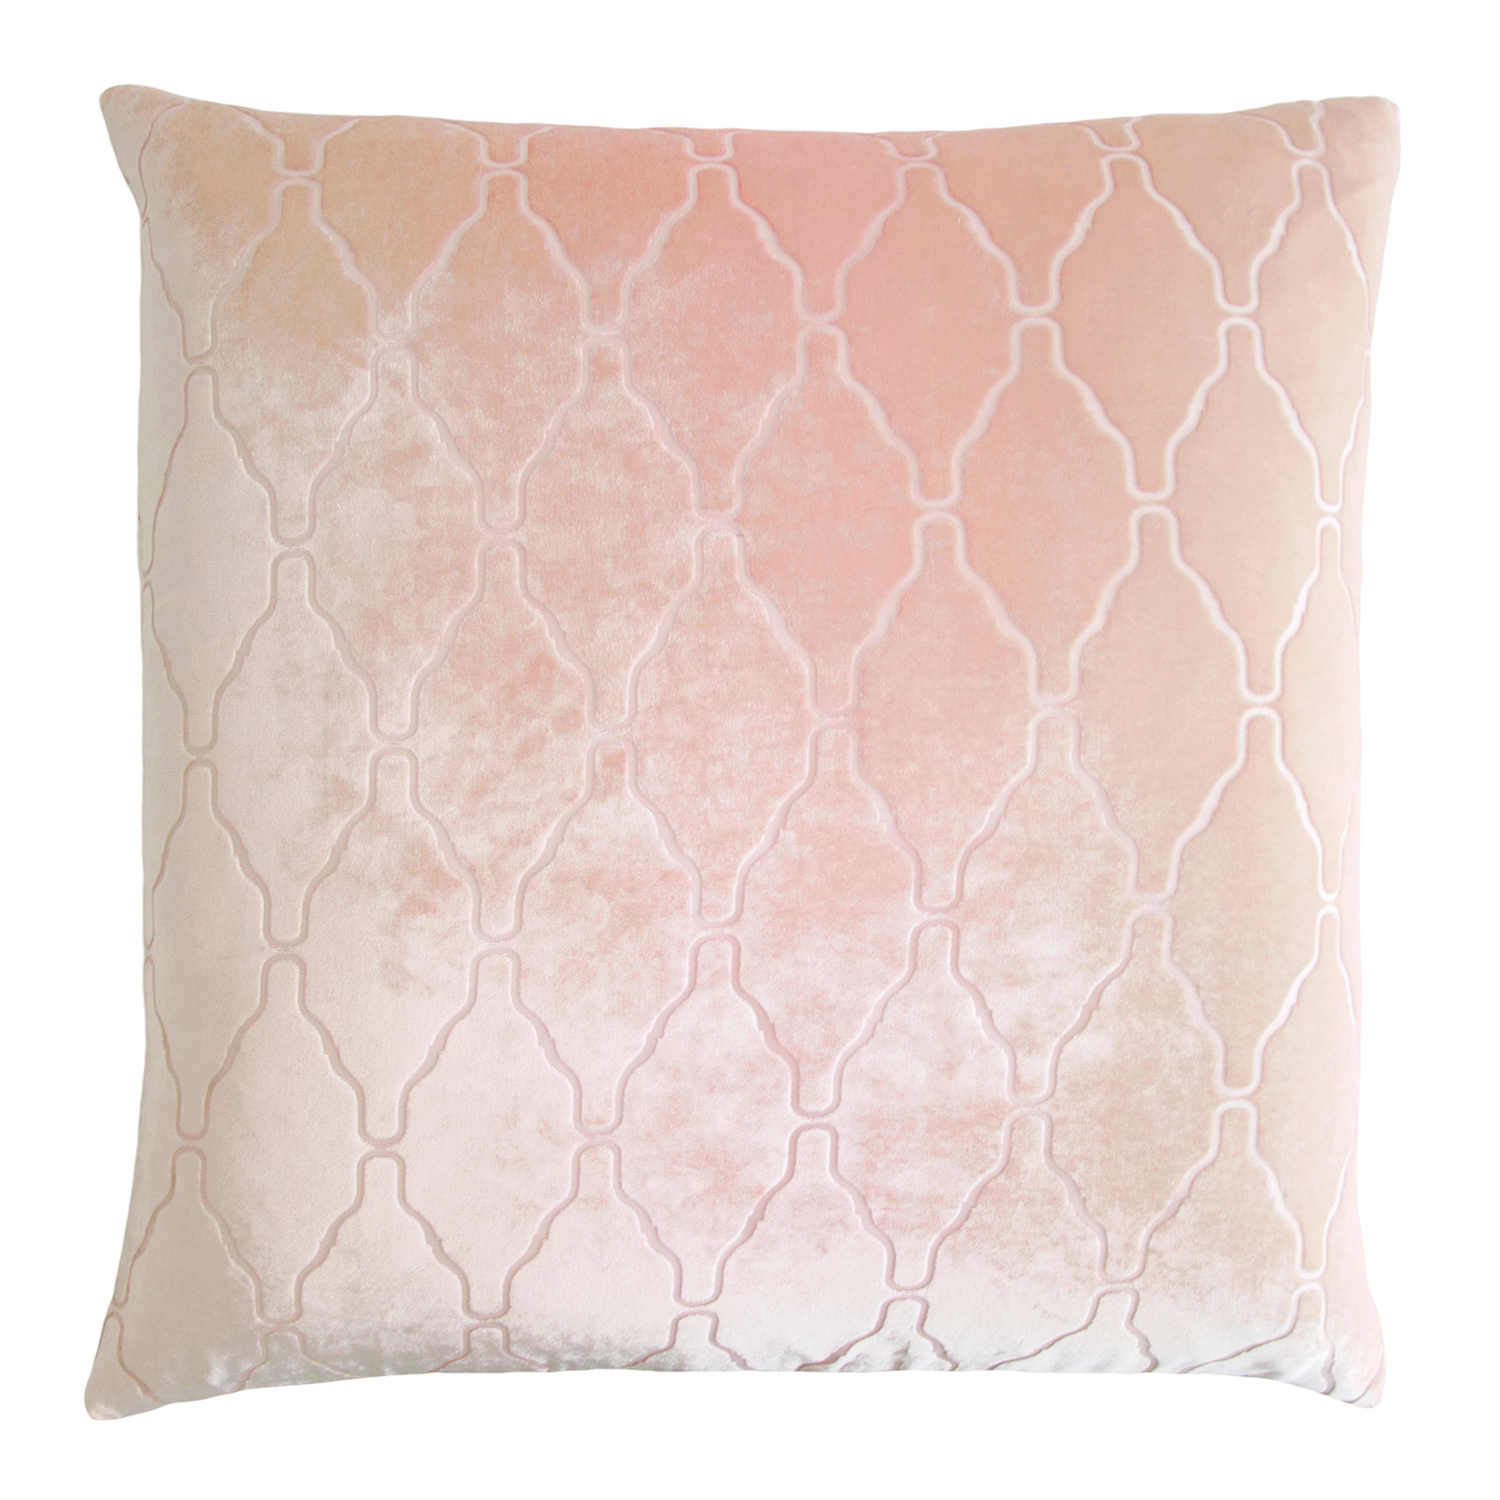 peach pillows loading cushion decorative by nude linear pink fabric decor prod foam nomess memory